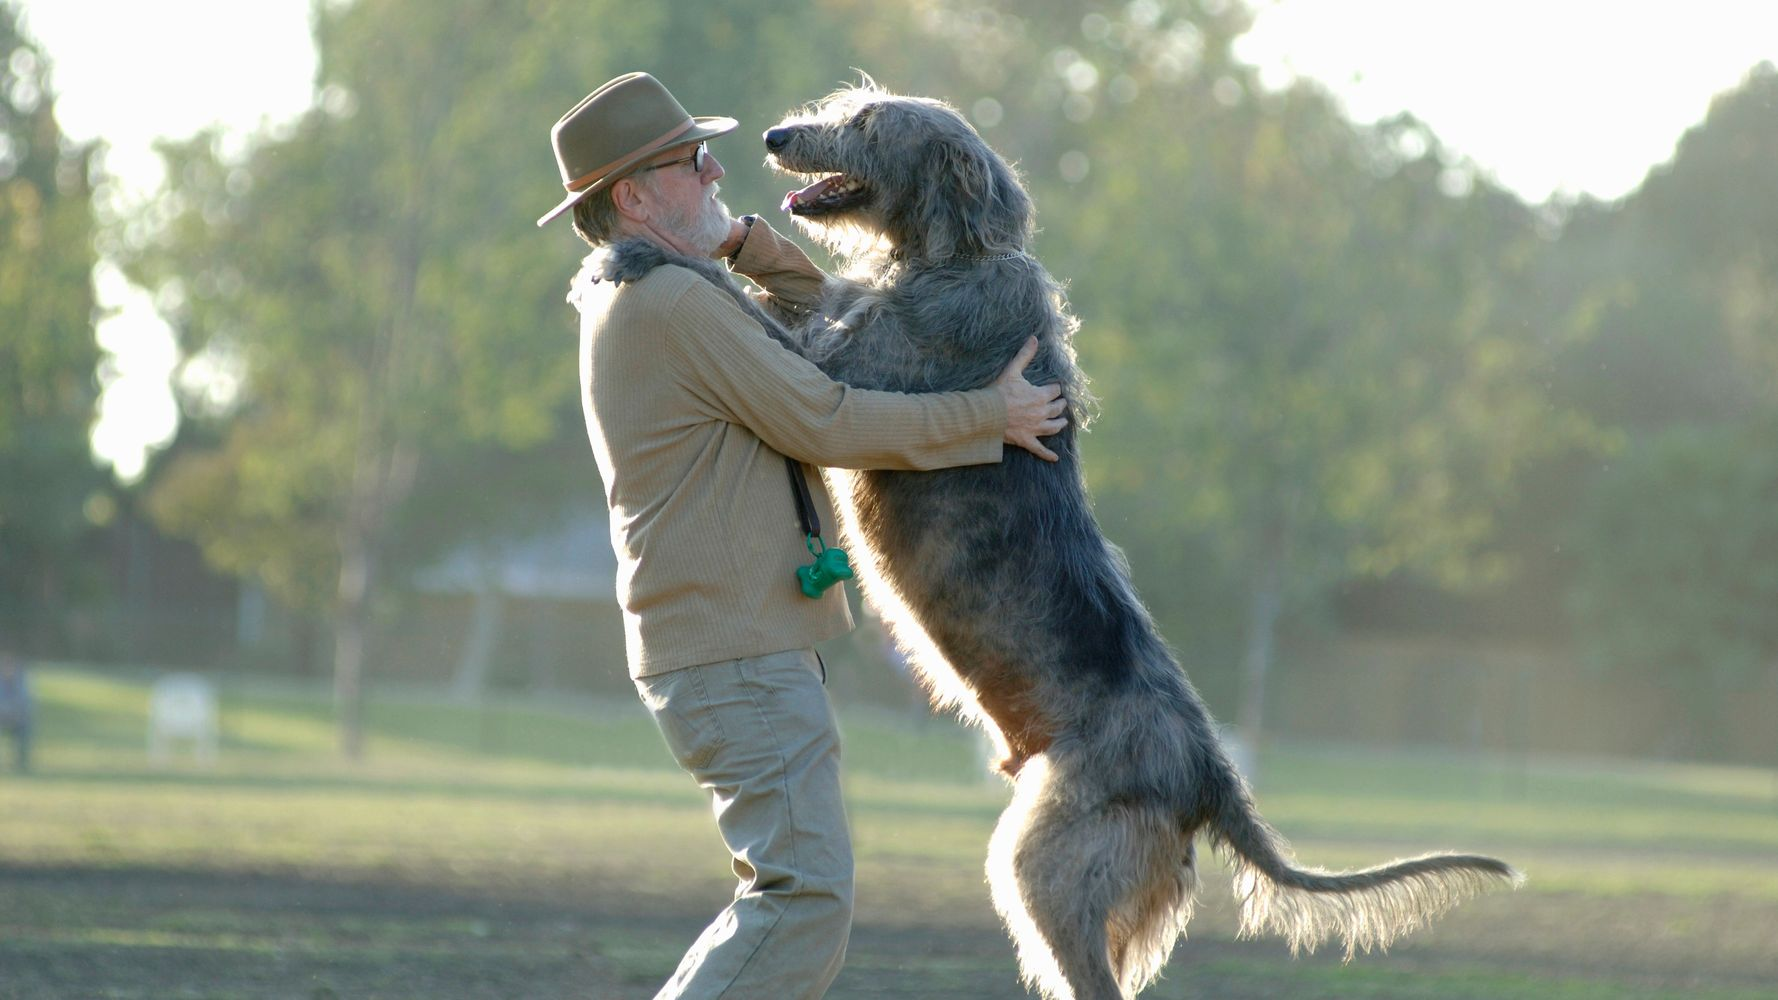 The 10 Health Benefits Of Dogs (And One Health Risk) | HuffPost